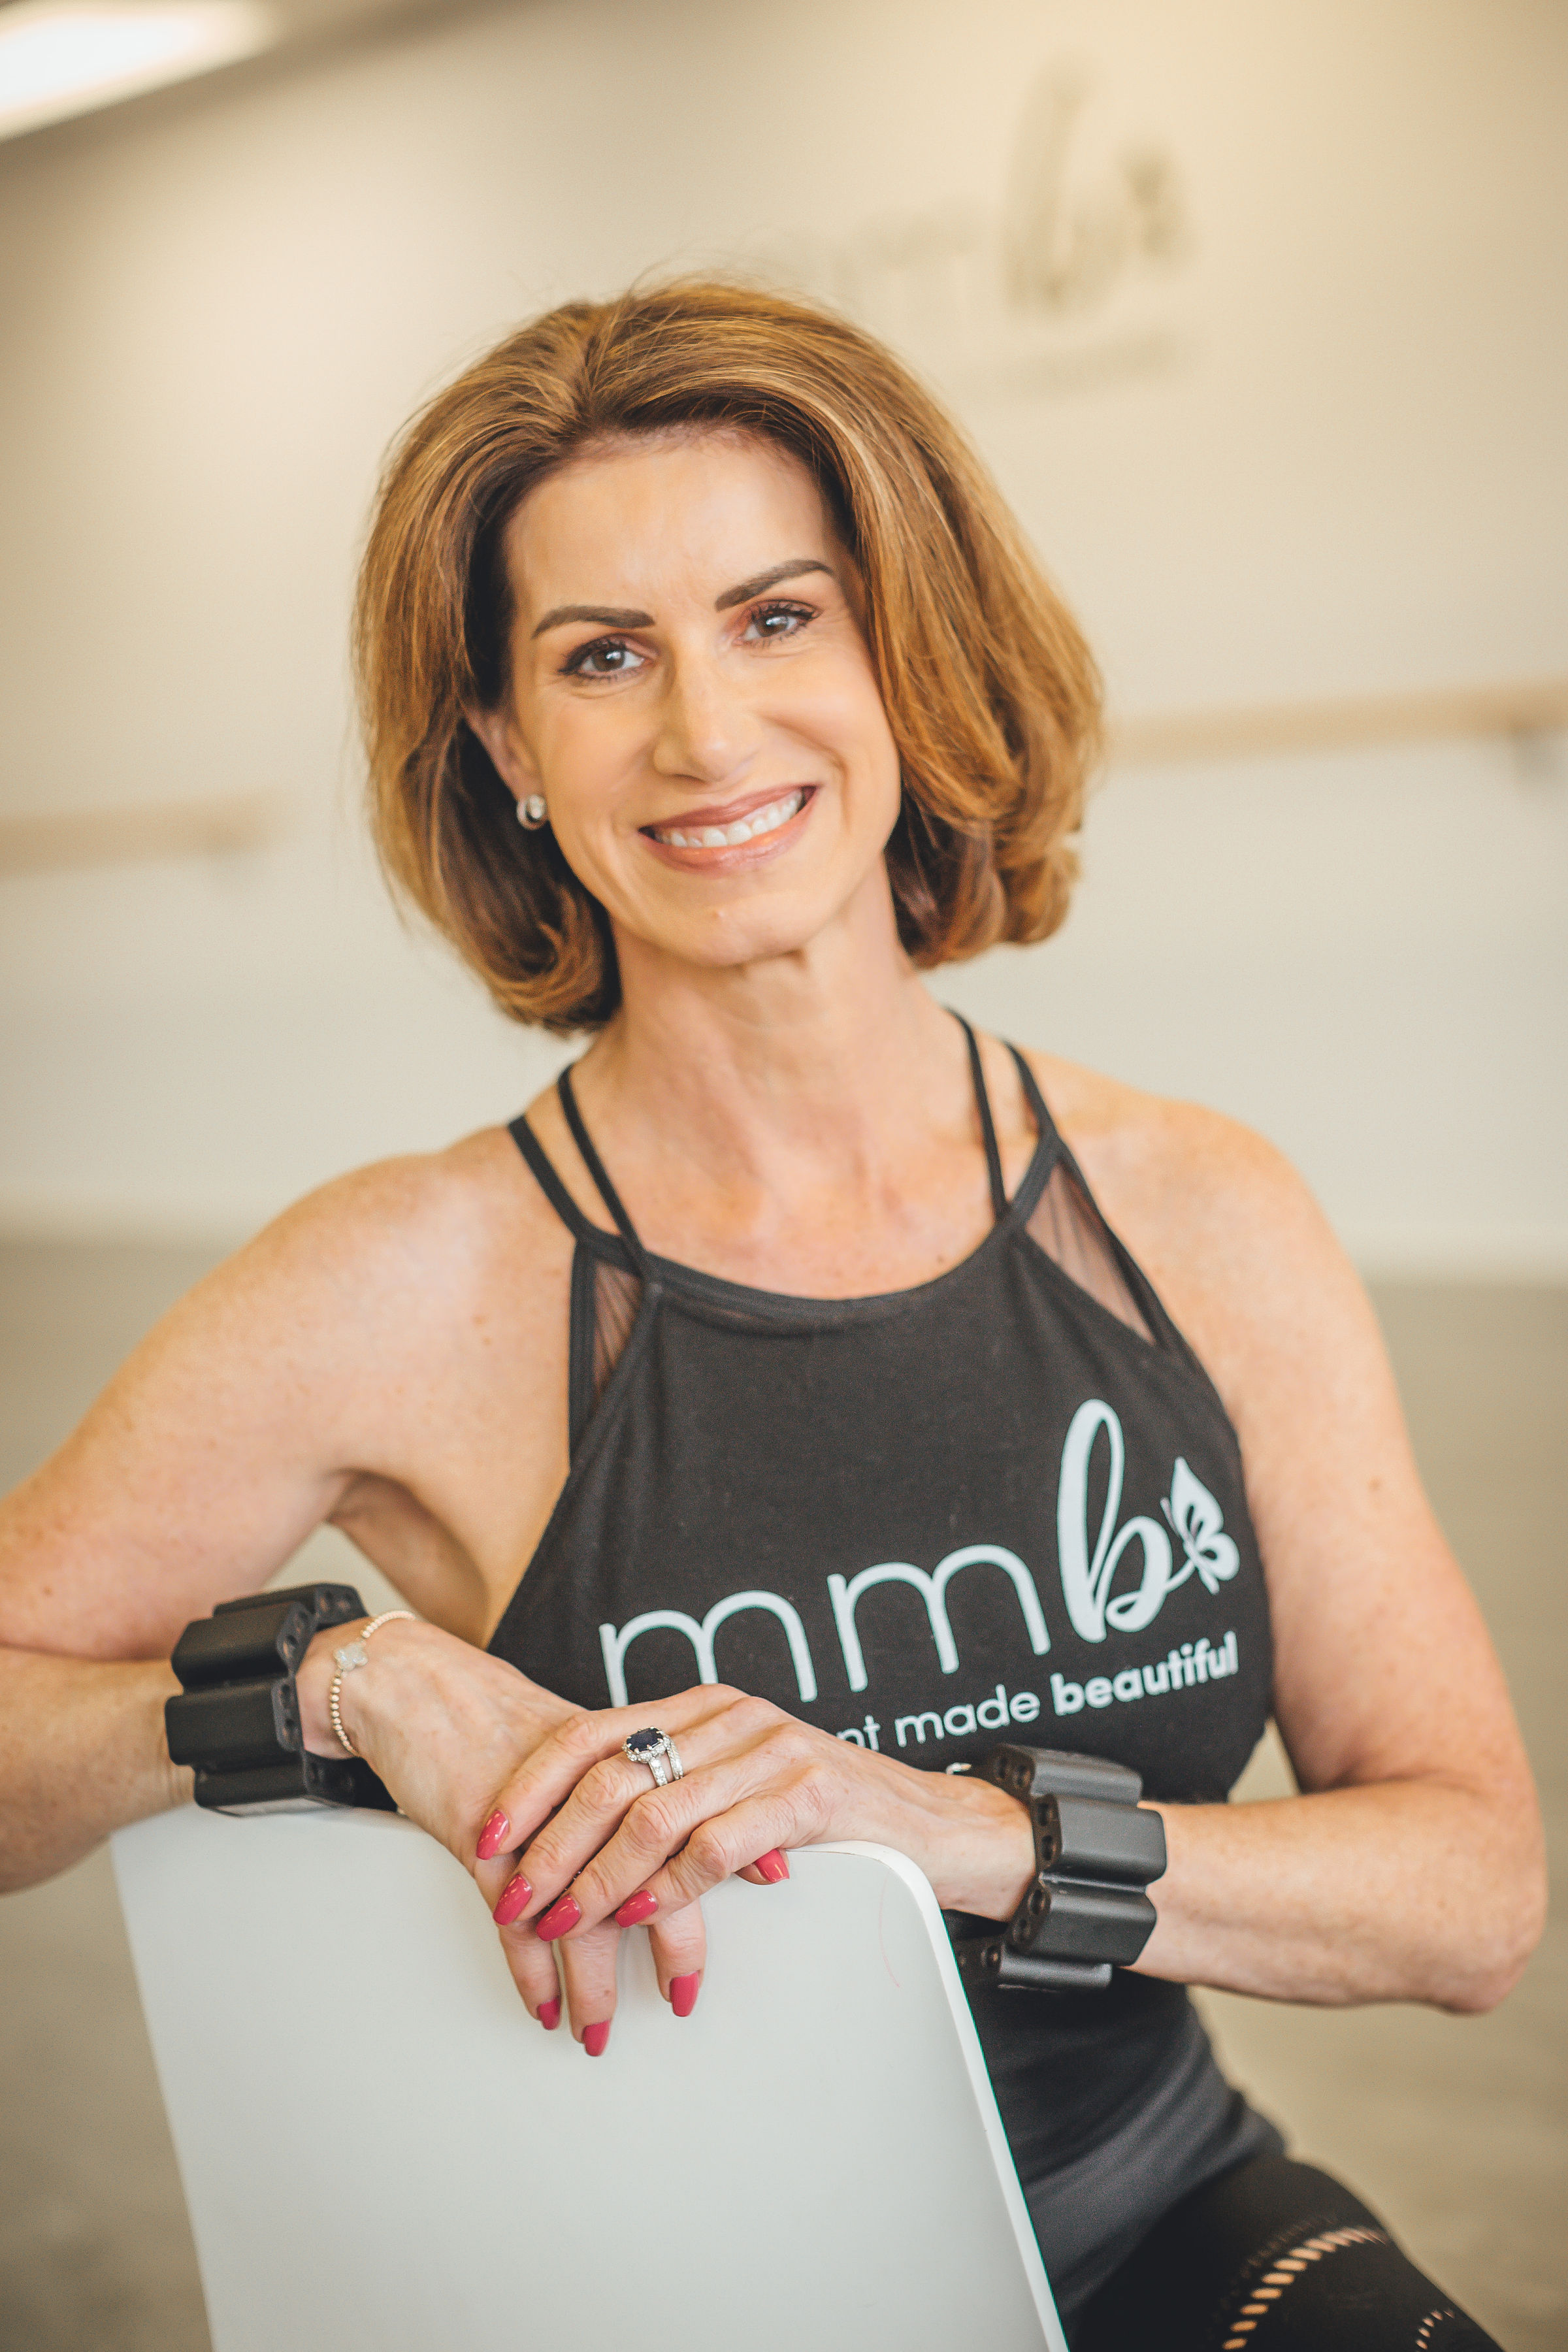 Julie Graham-Instructor of Barre-Sculpt and Cardio Dance. Julie worked as a professional dancer for Ballet West and for the Milwaukee Ballet. Her grace and elegance are fun to watch and learn from.